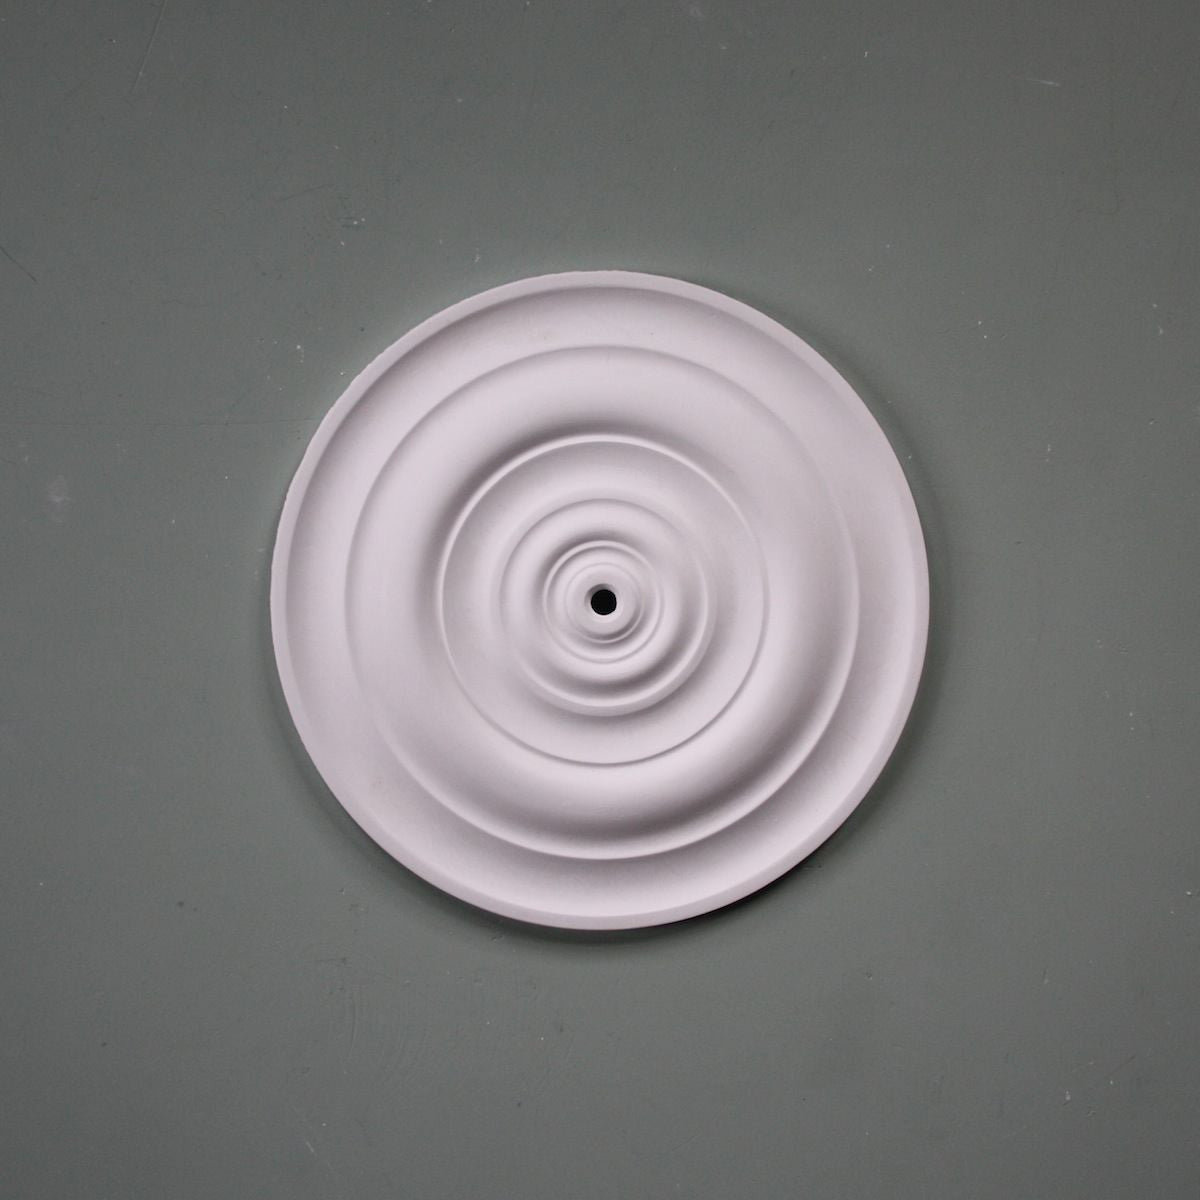 Ceiling Rose Small 340mm dia. SPR008